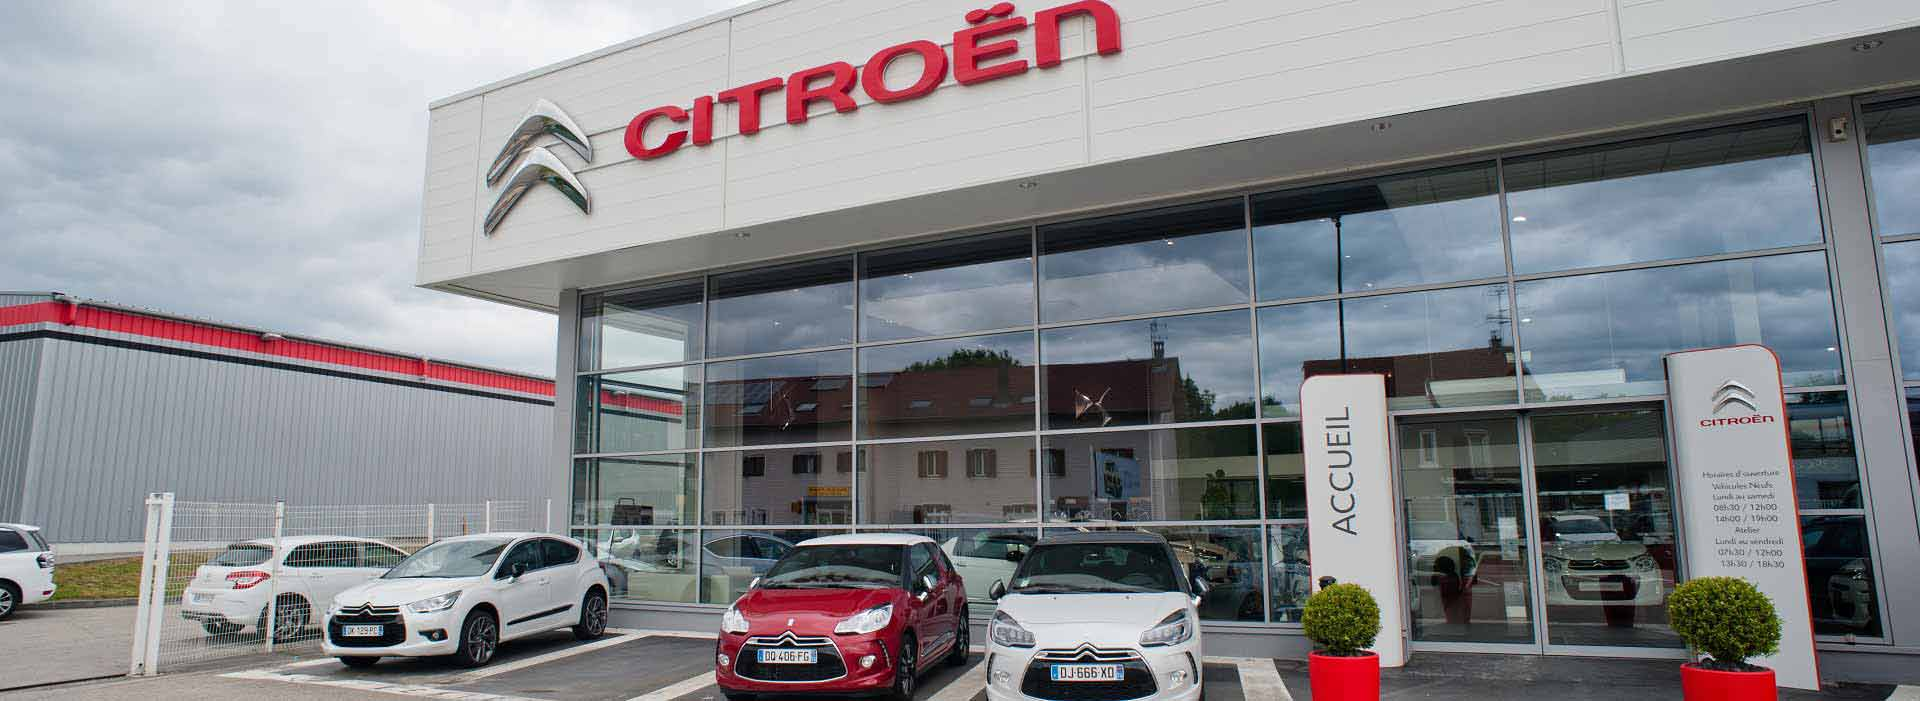 Citroen annemasse concessionnaire garage haute savoie 74 for Citroen antibes garage